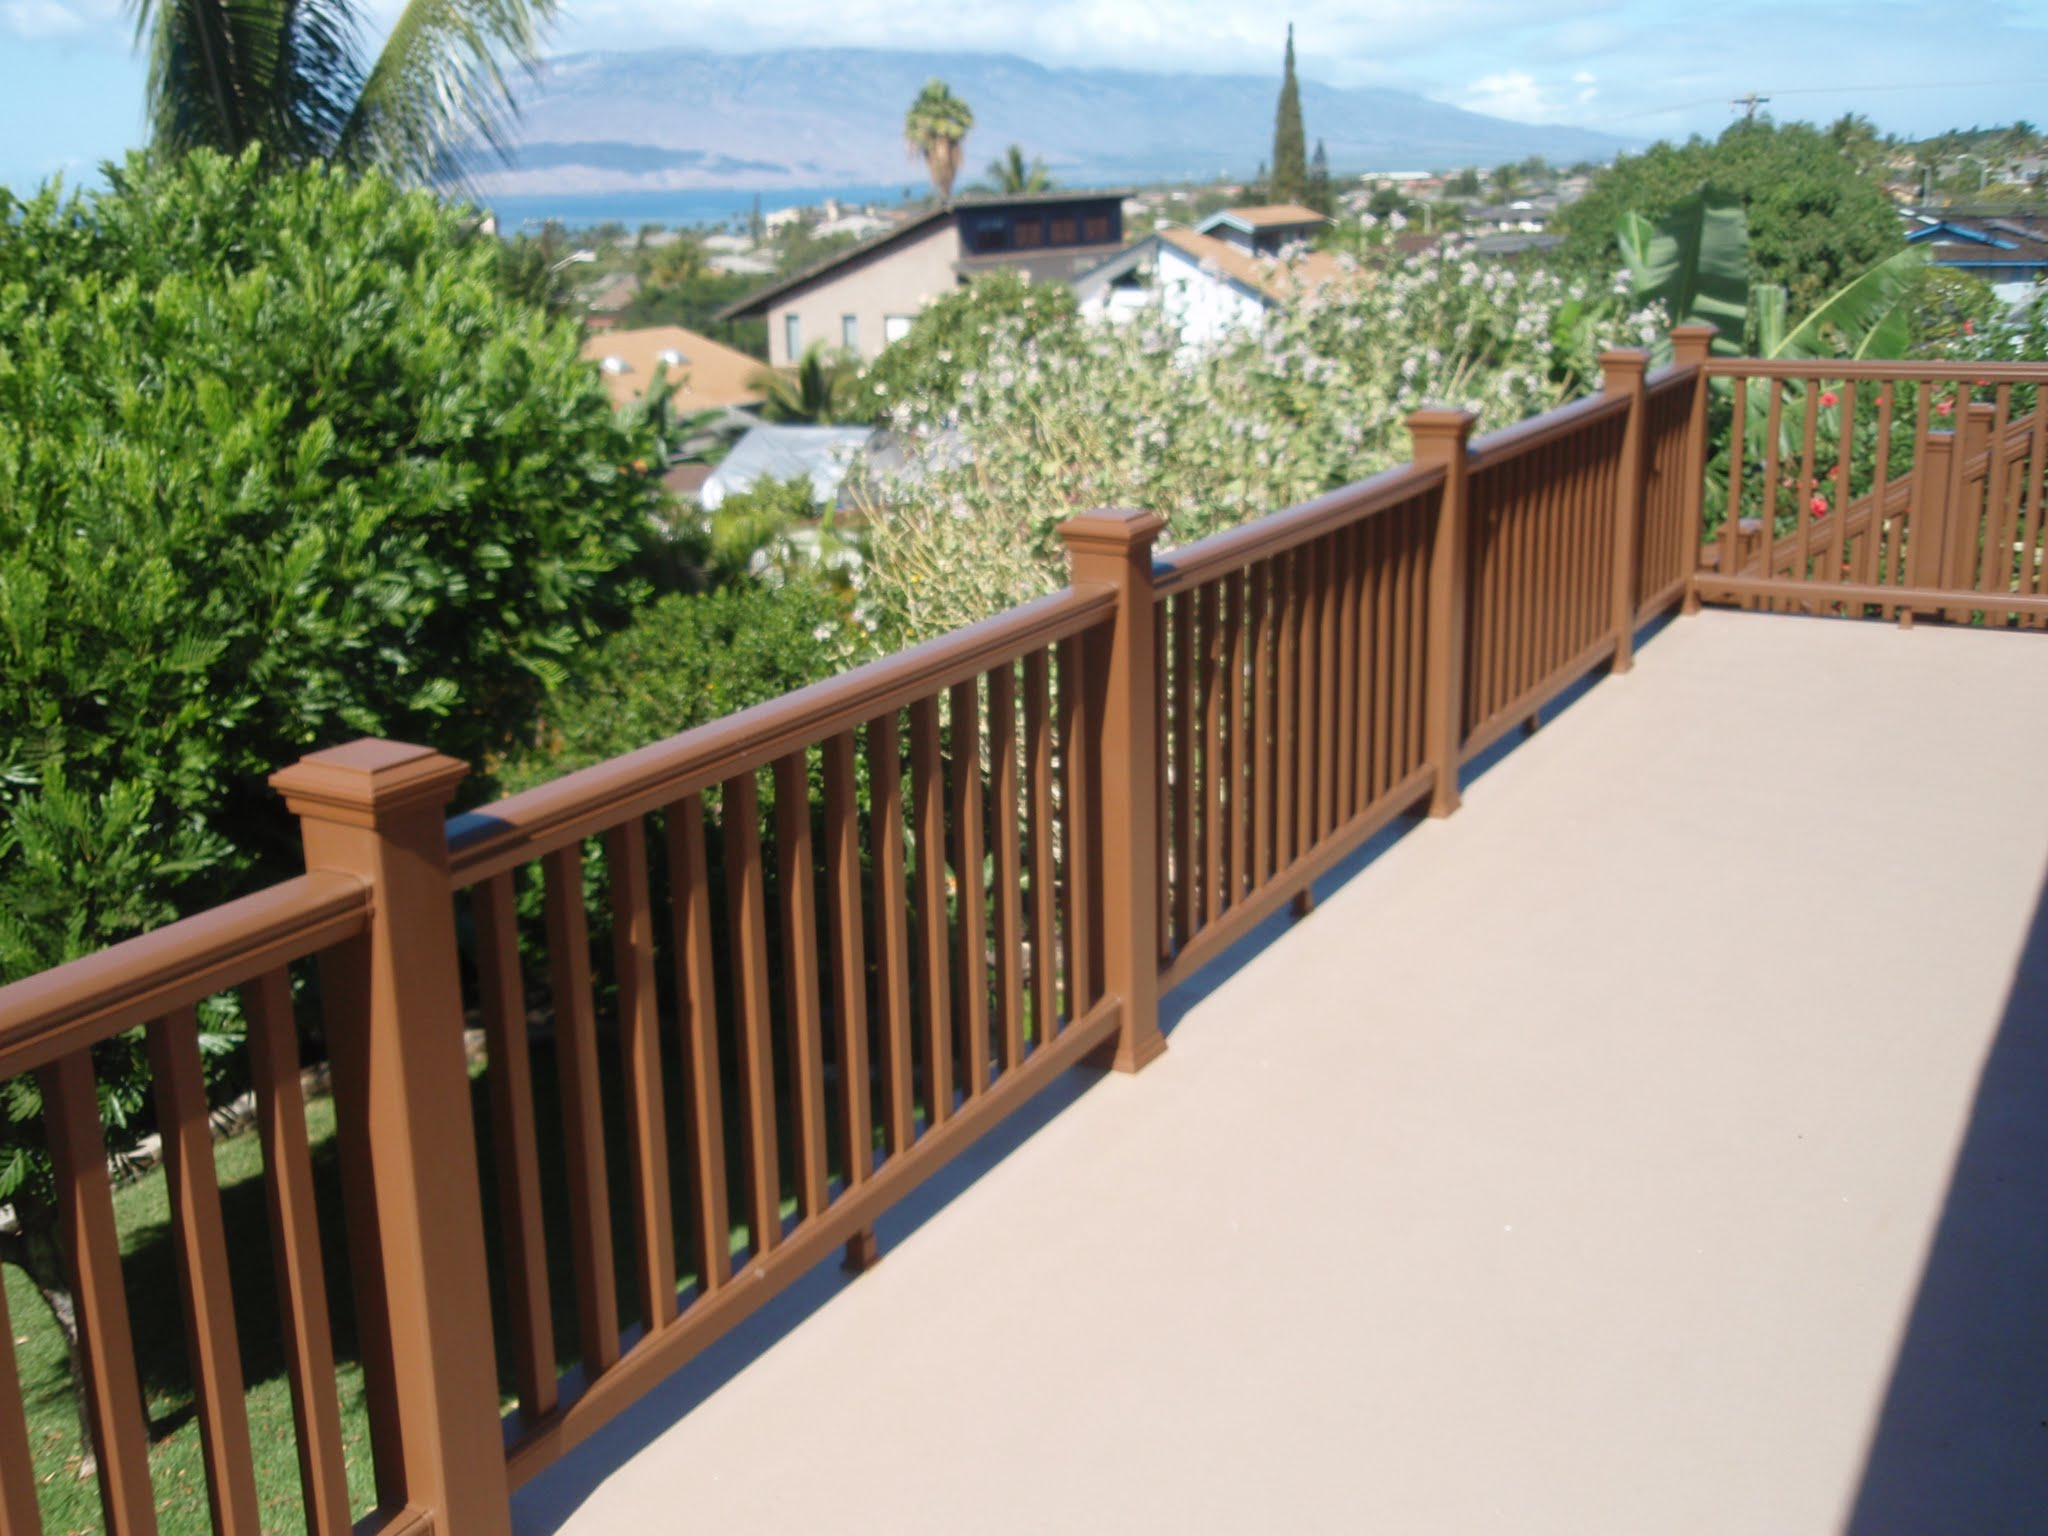 Now this is a deck you want to be on often to enjoy that ocean view !